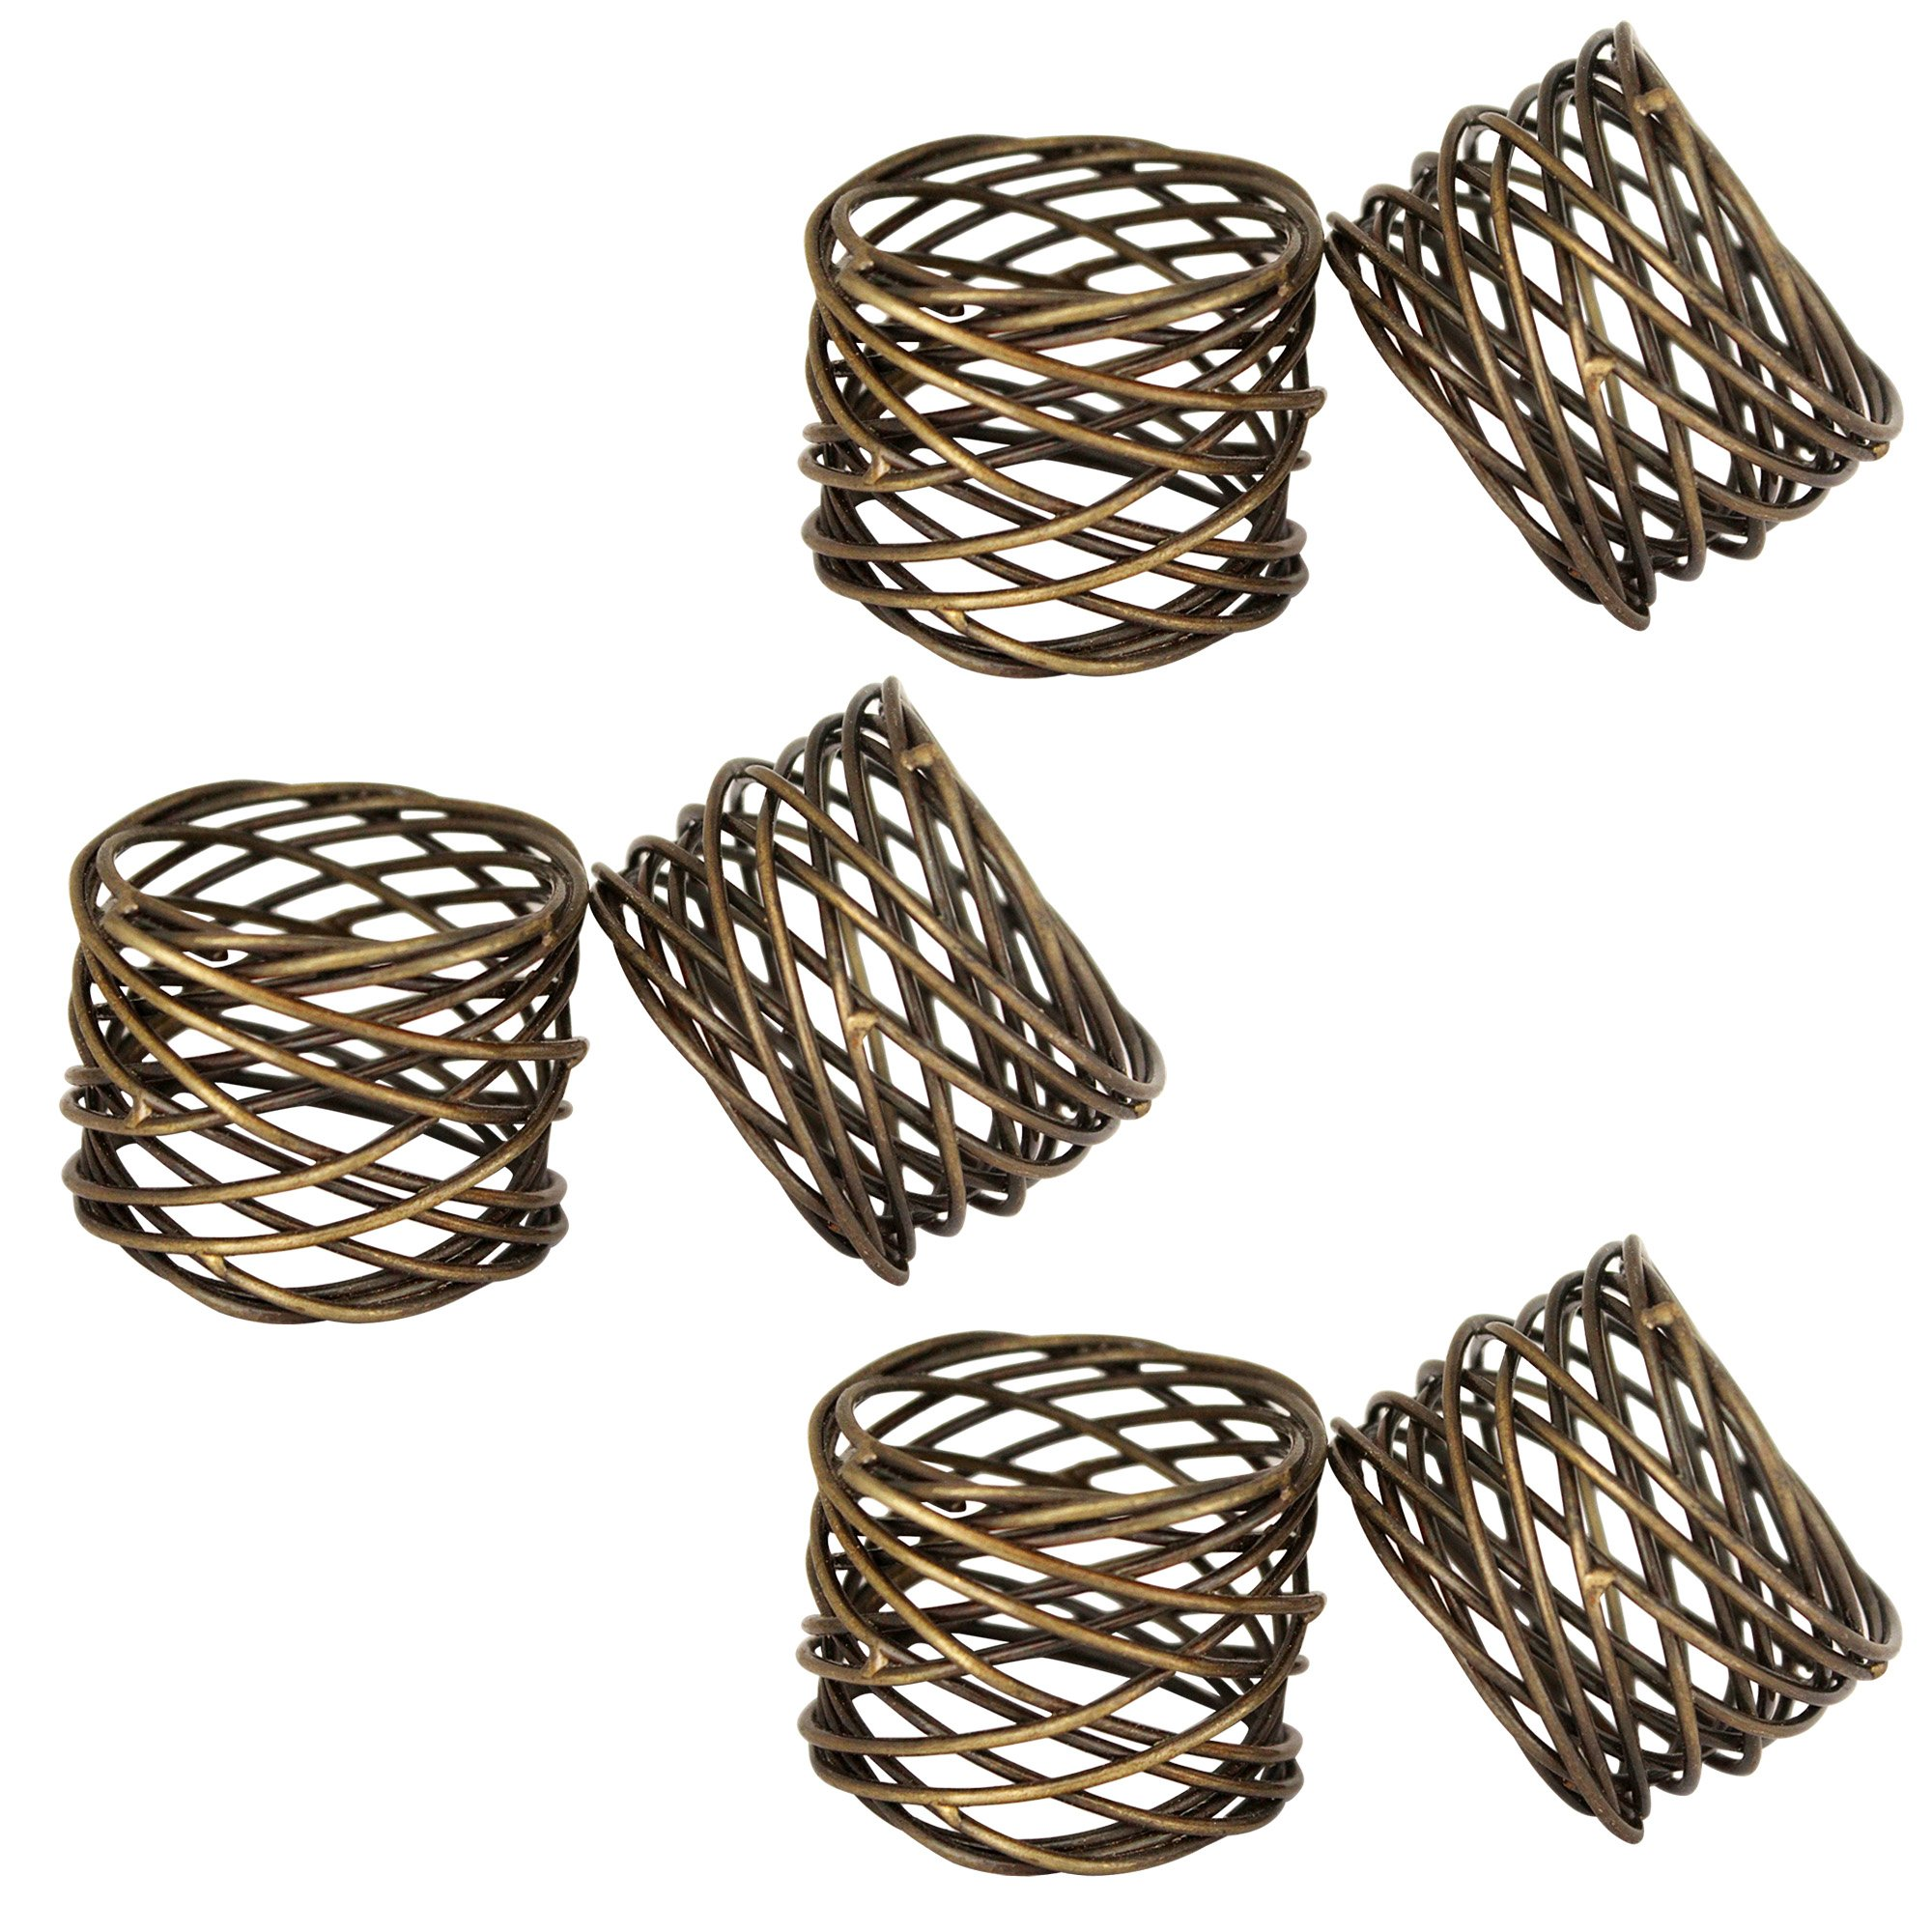 ITOS365 Handmade Round Mesh Napkin Rings Holder Dinning Table Parties Everyday, Set of 6